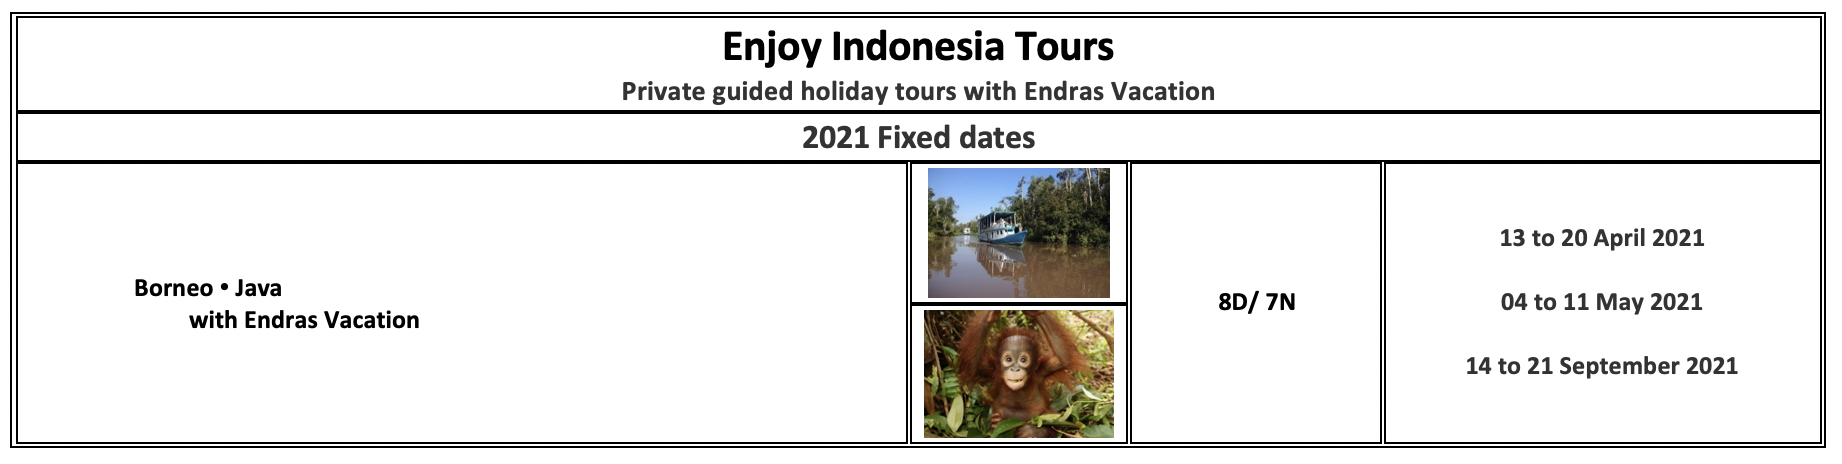 Enjoy Indonesia Tours 2021 Endras Vacation